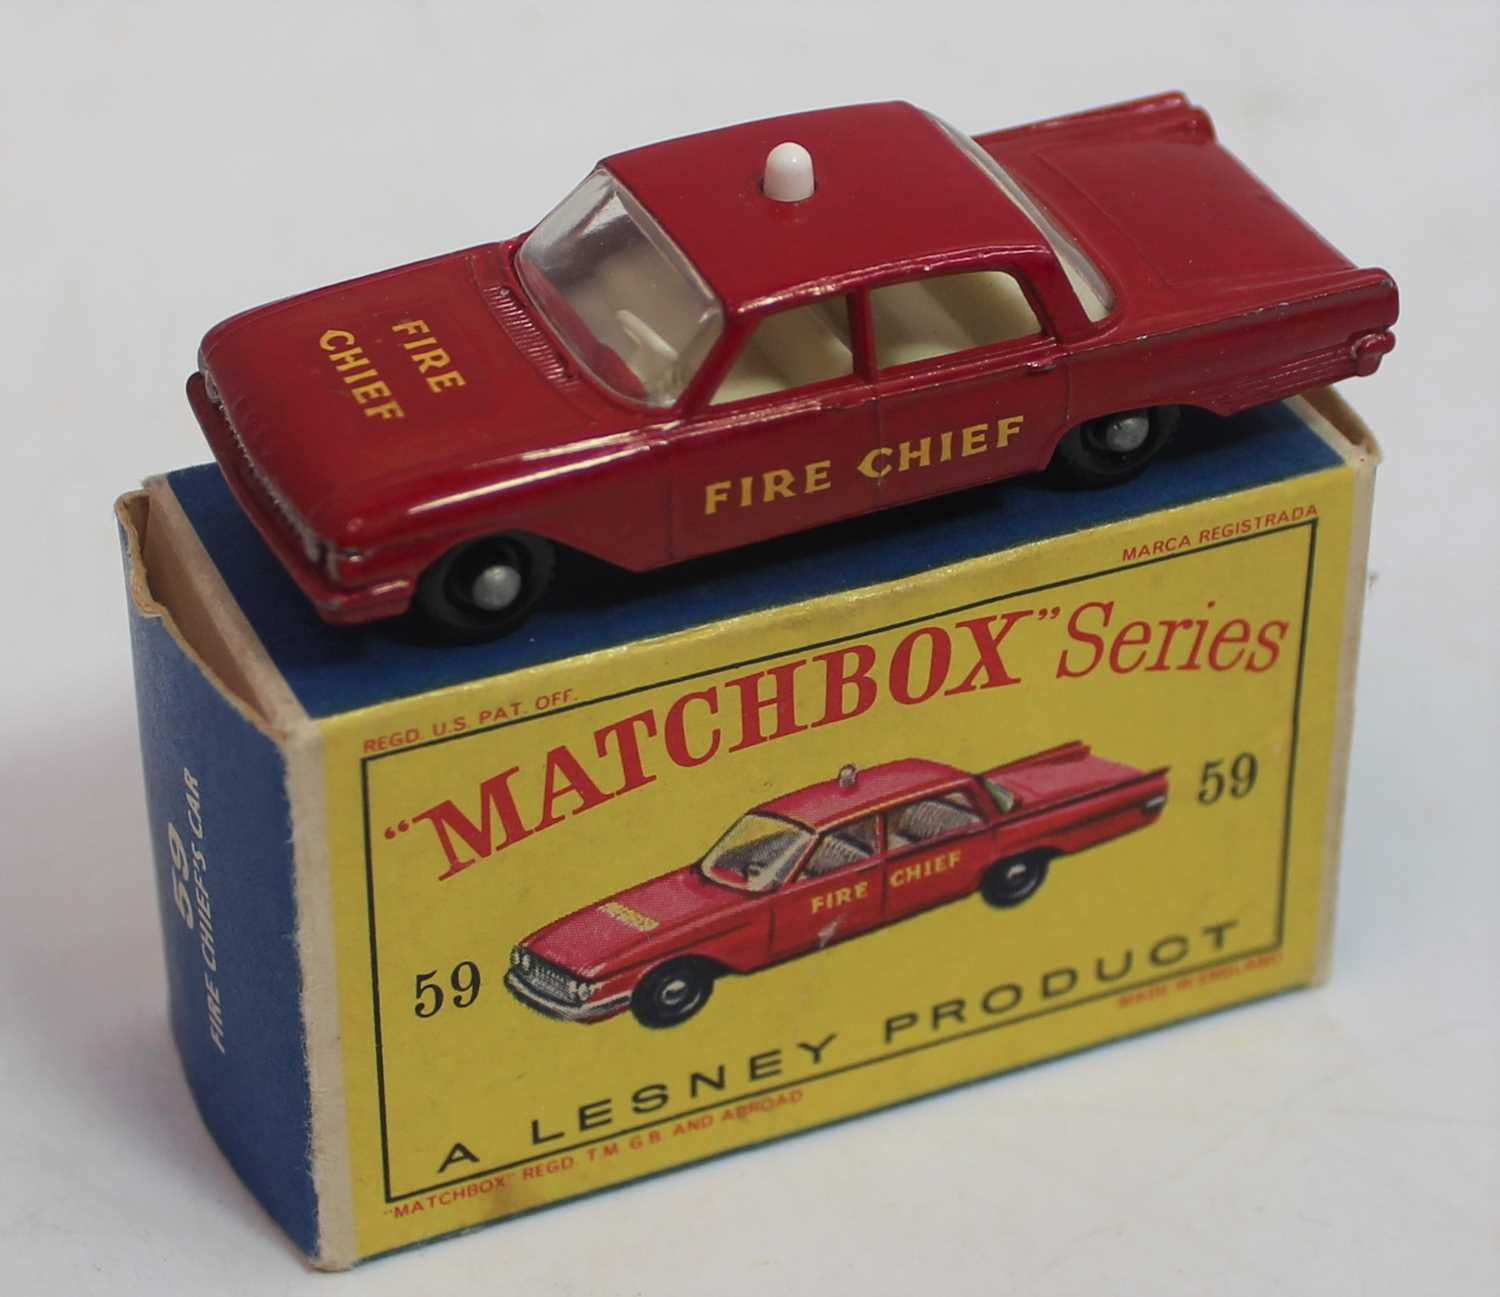 Matchbox Series No.59 Ford Fairlane Fire Chief's Car. In red with cream interior, white light to - Image 2 of 2